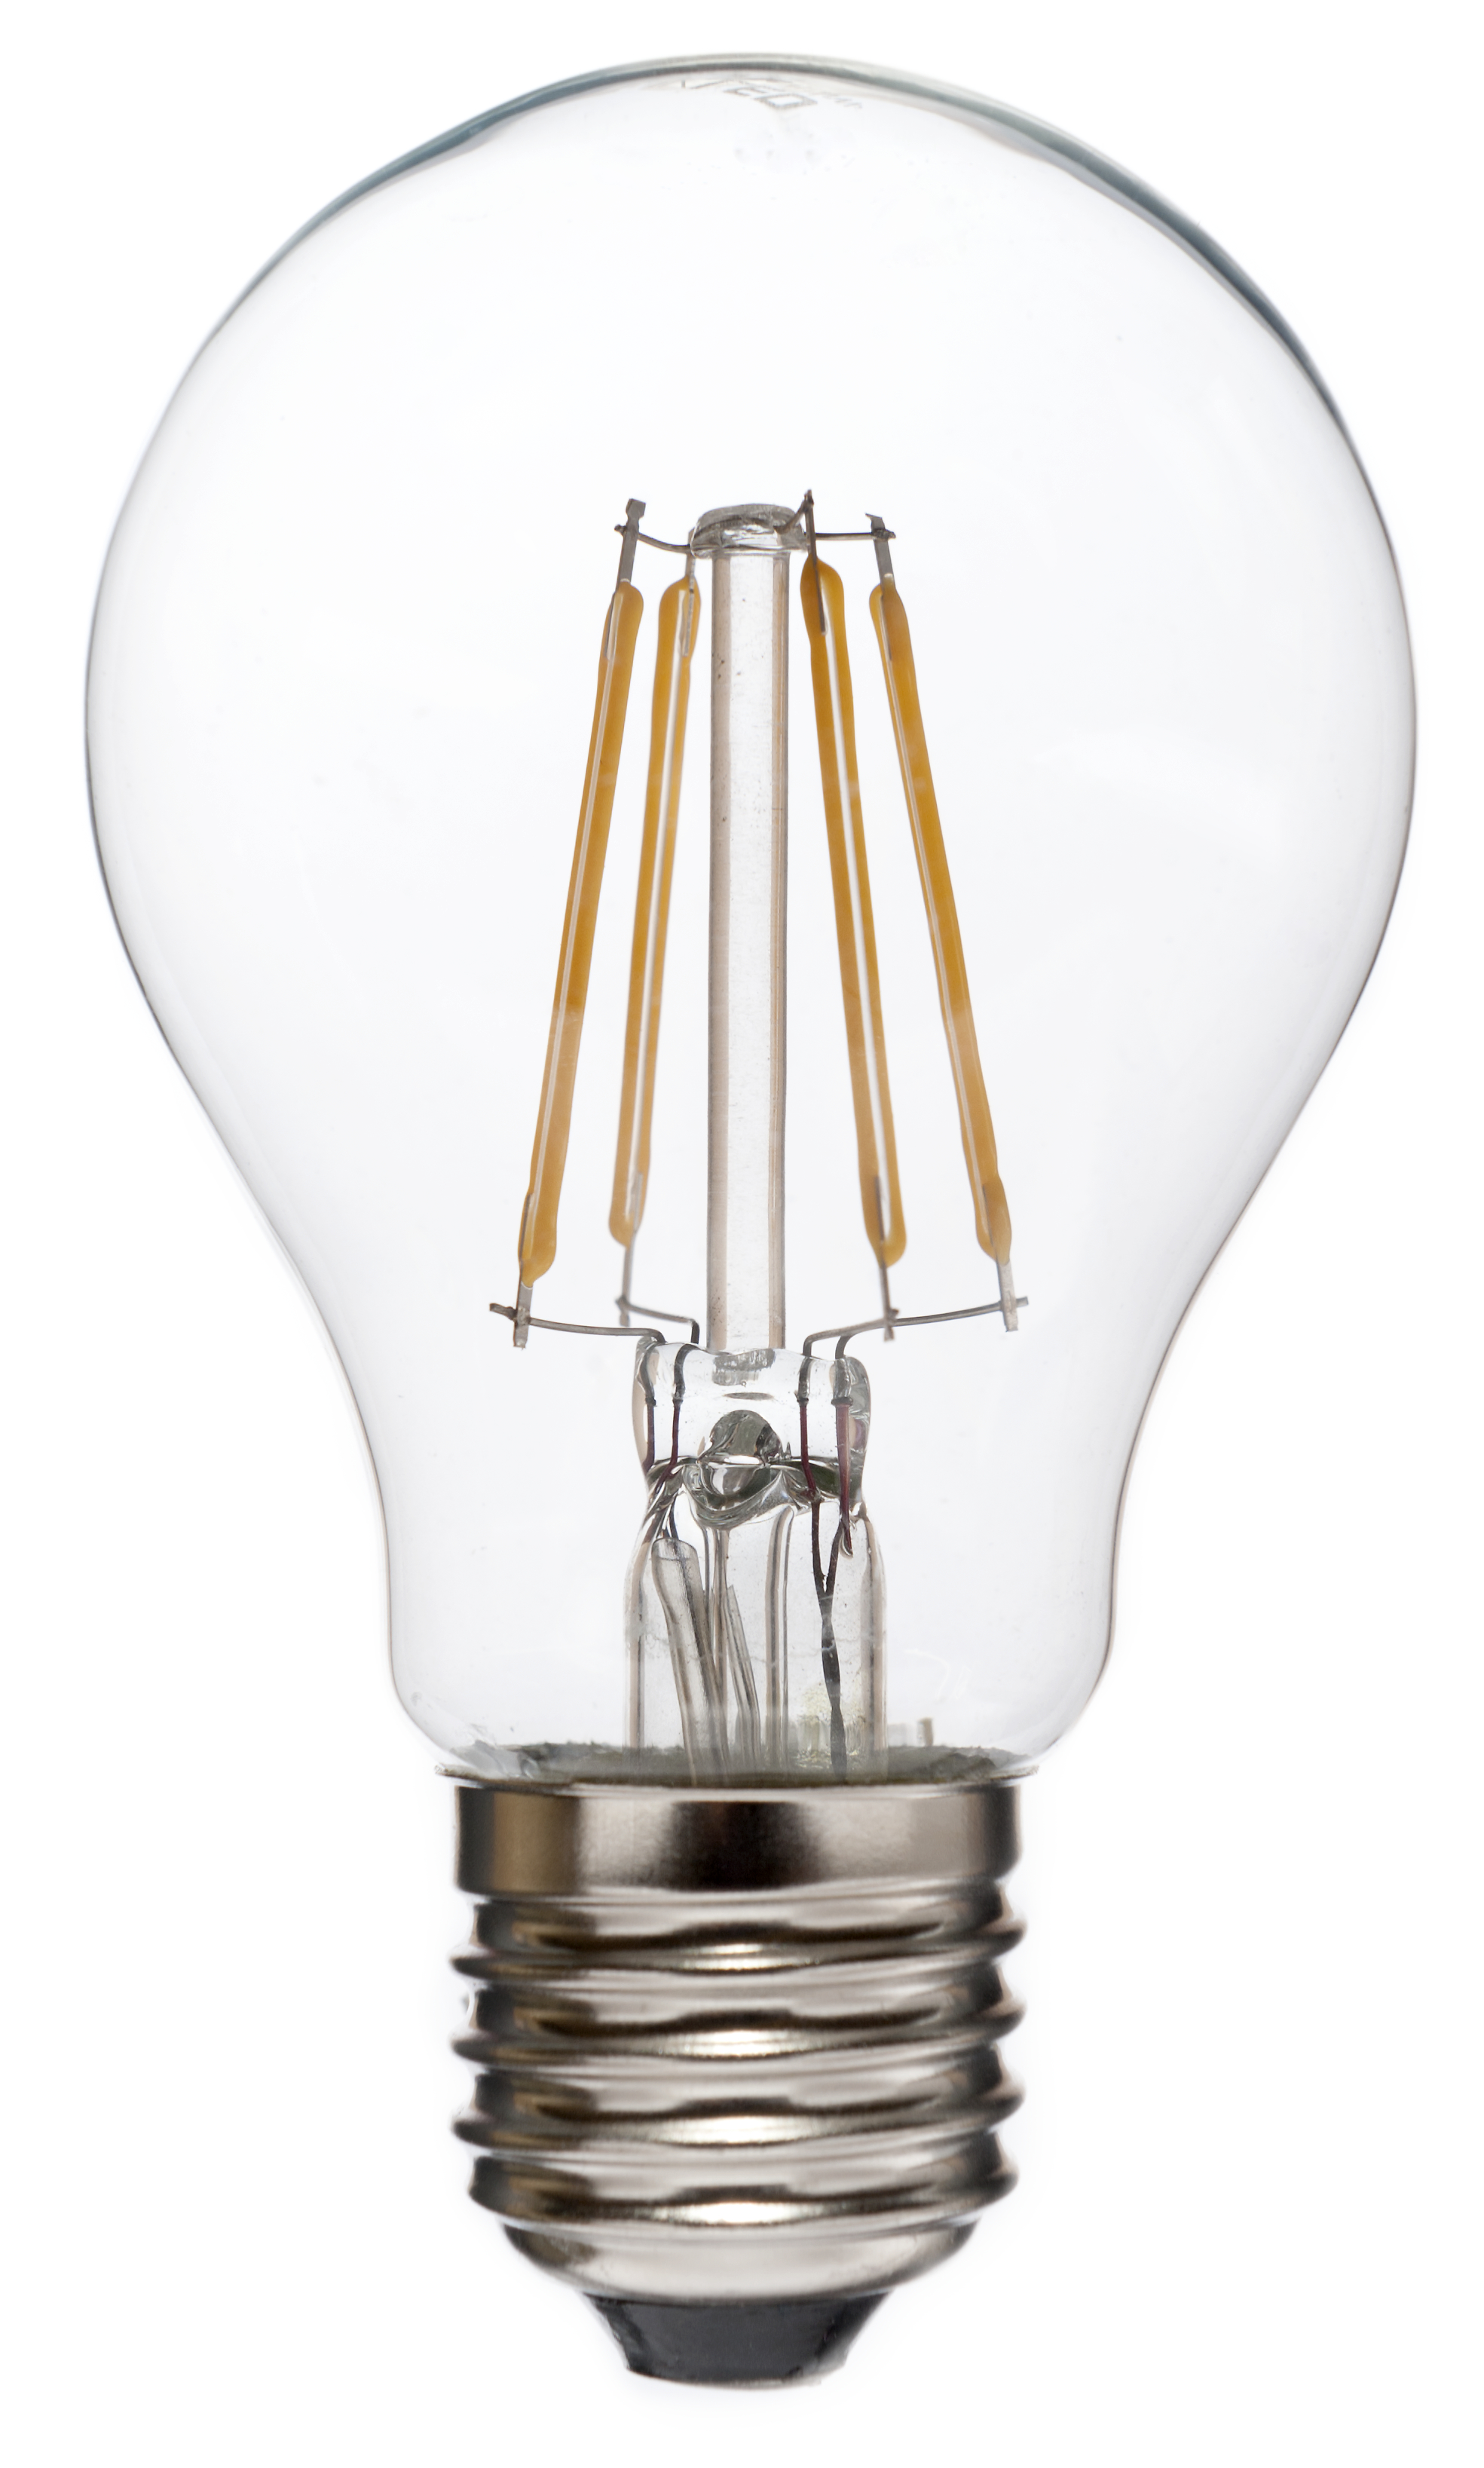 LED Vintage Filament Lamps